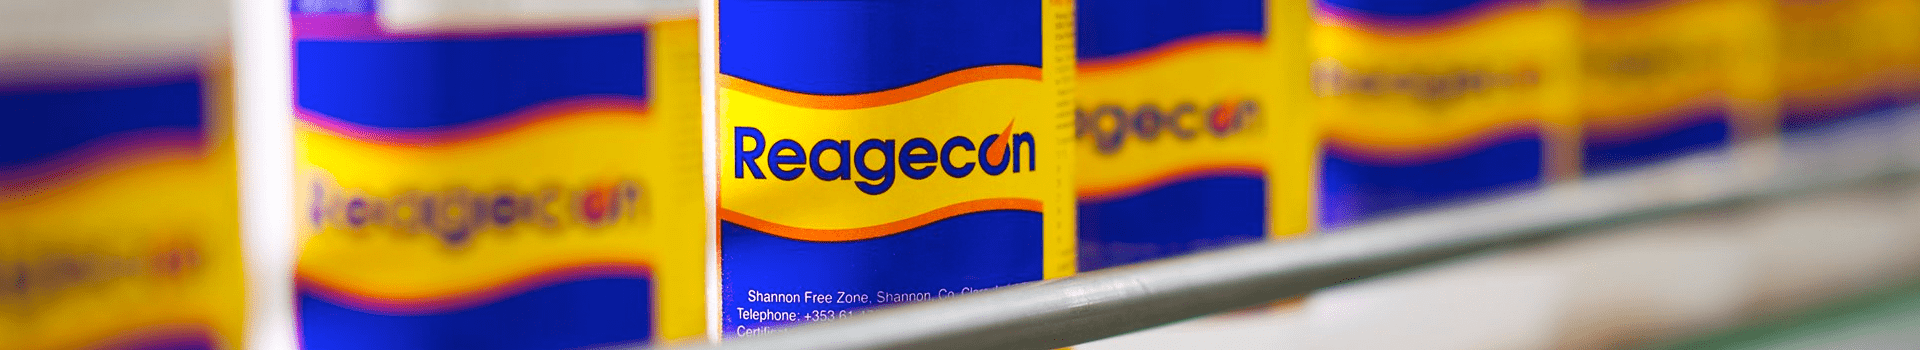 Reagecon physicochemical standards and laboratory reagents